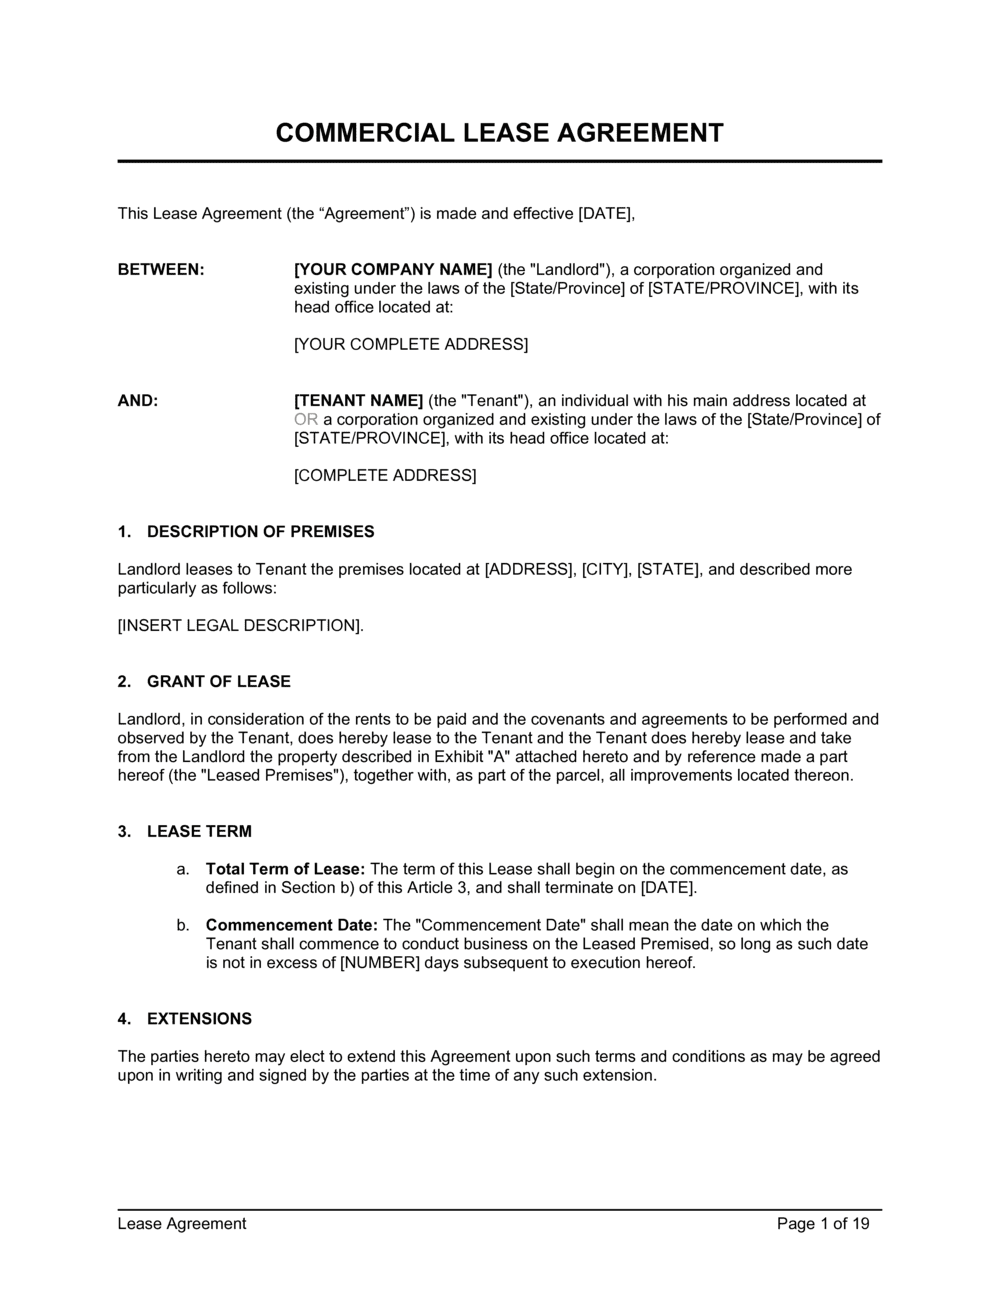 Business-in-a-Box's Commercial Lease Agreement Template